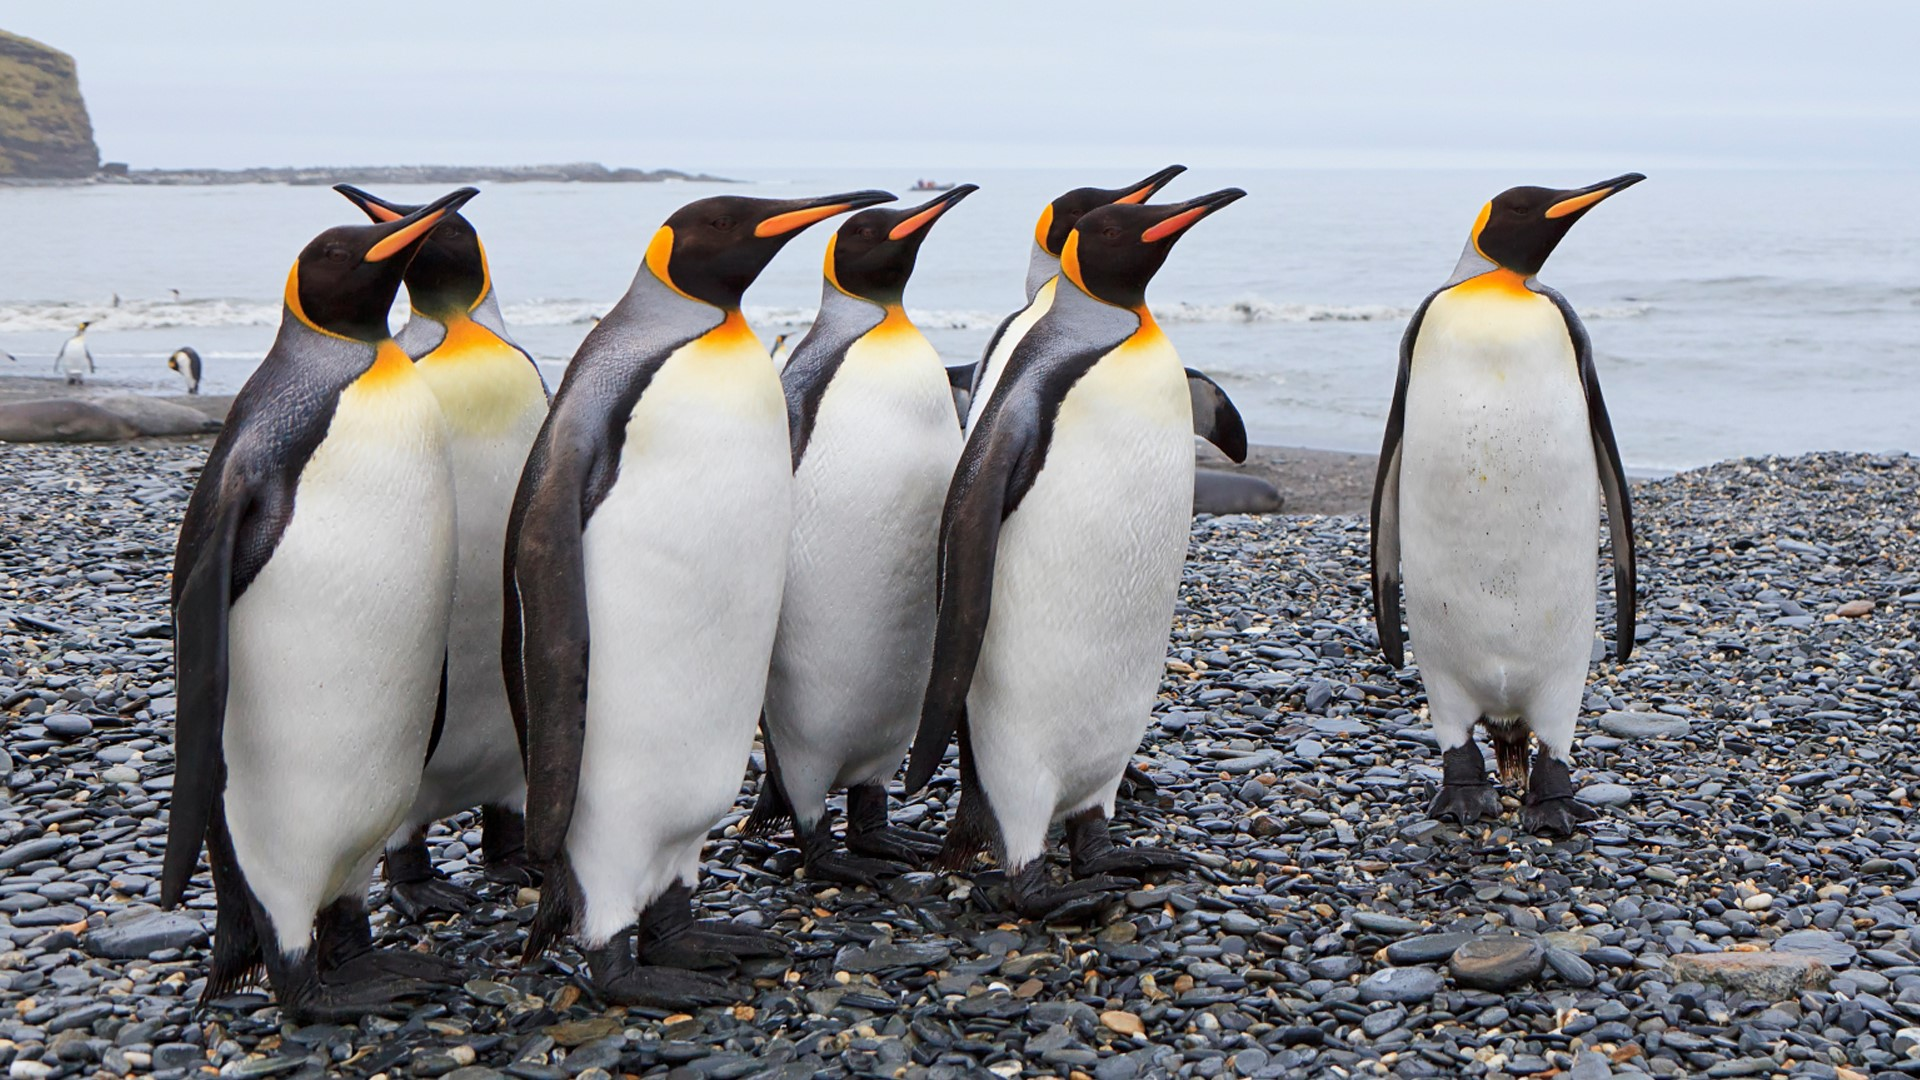 download King penguins at St Andrews Bay South Georgia Island 1920x1080